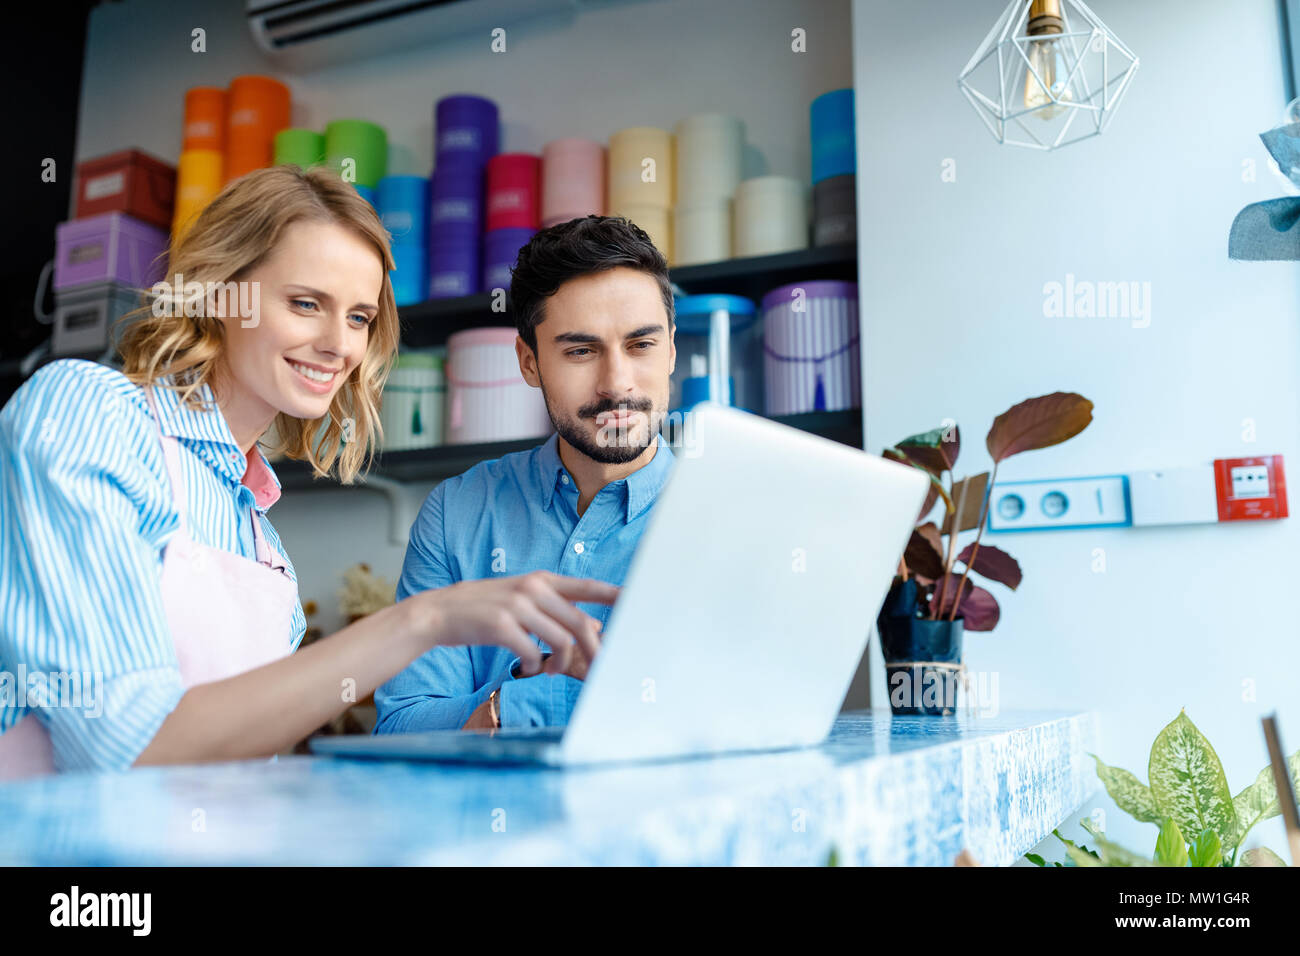 smiling young florist and male buyer using laptop together in flower shop - Stock Image